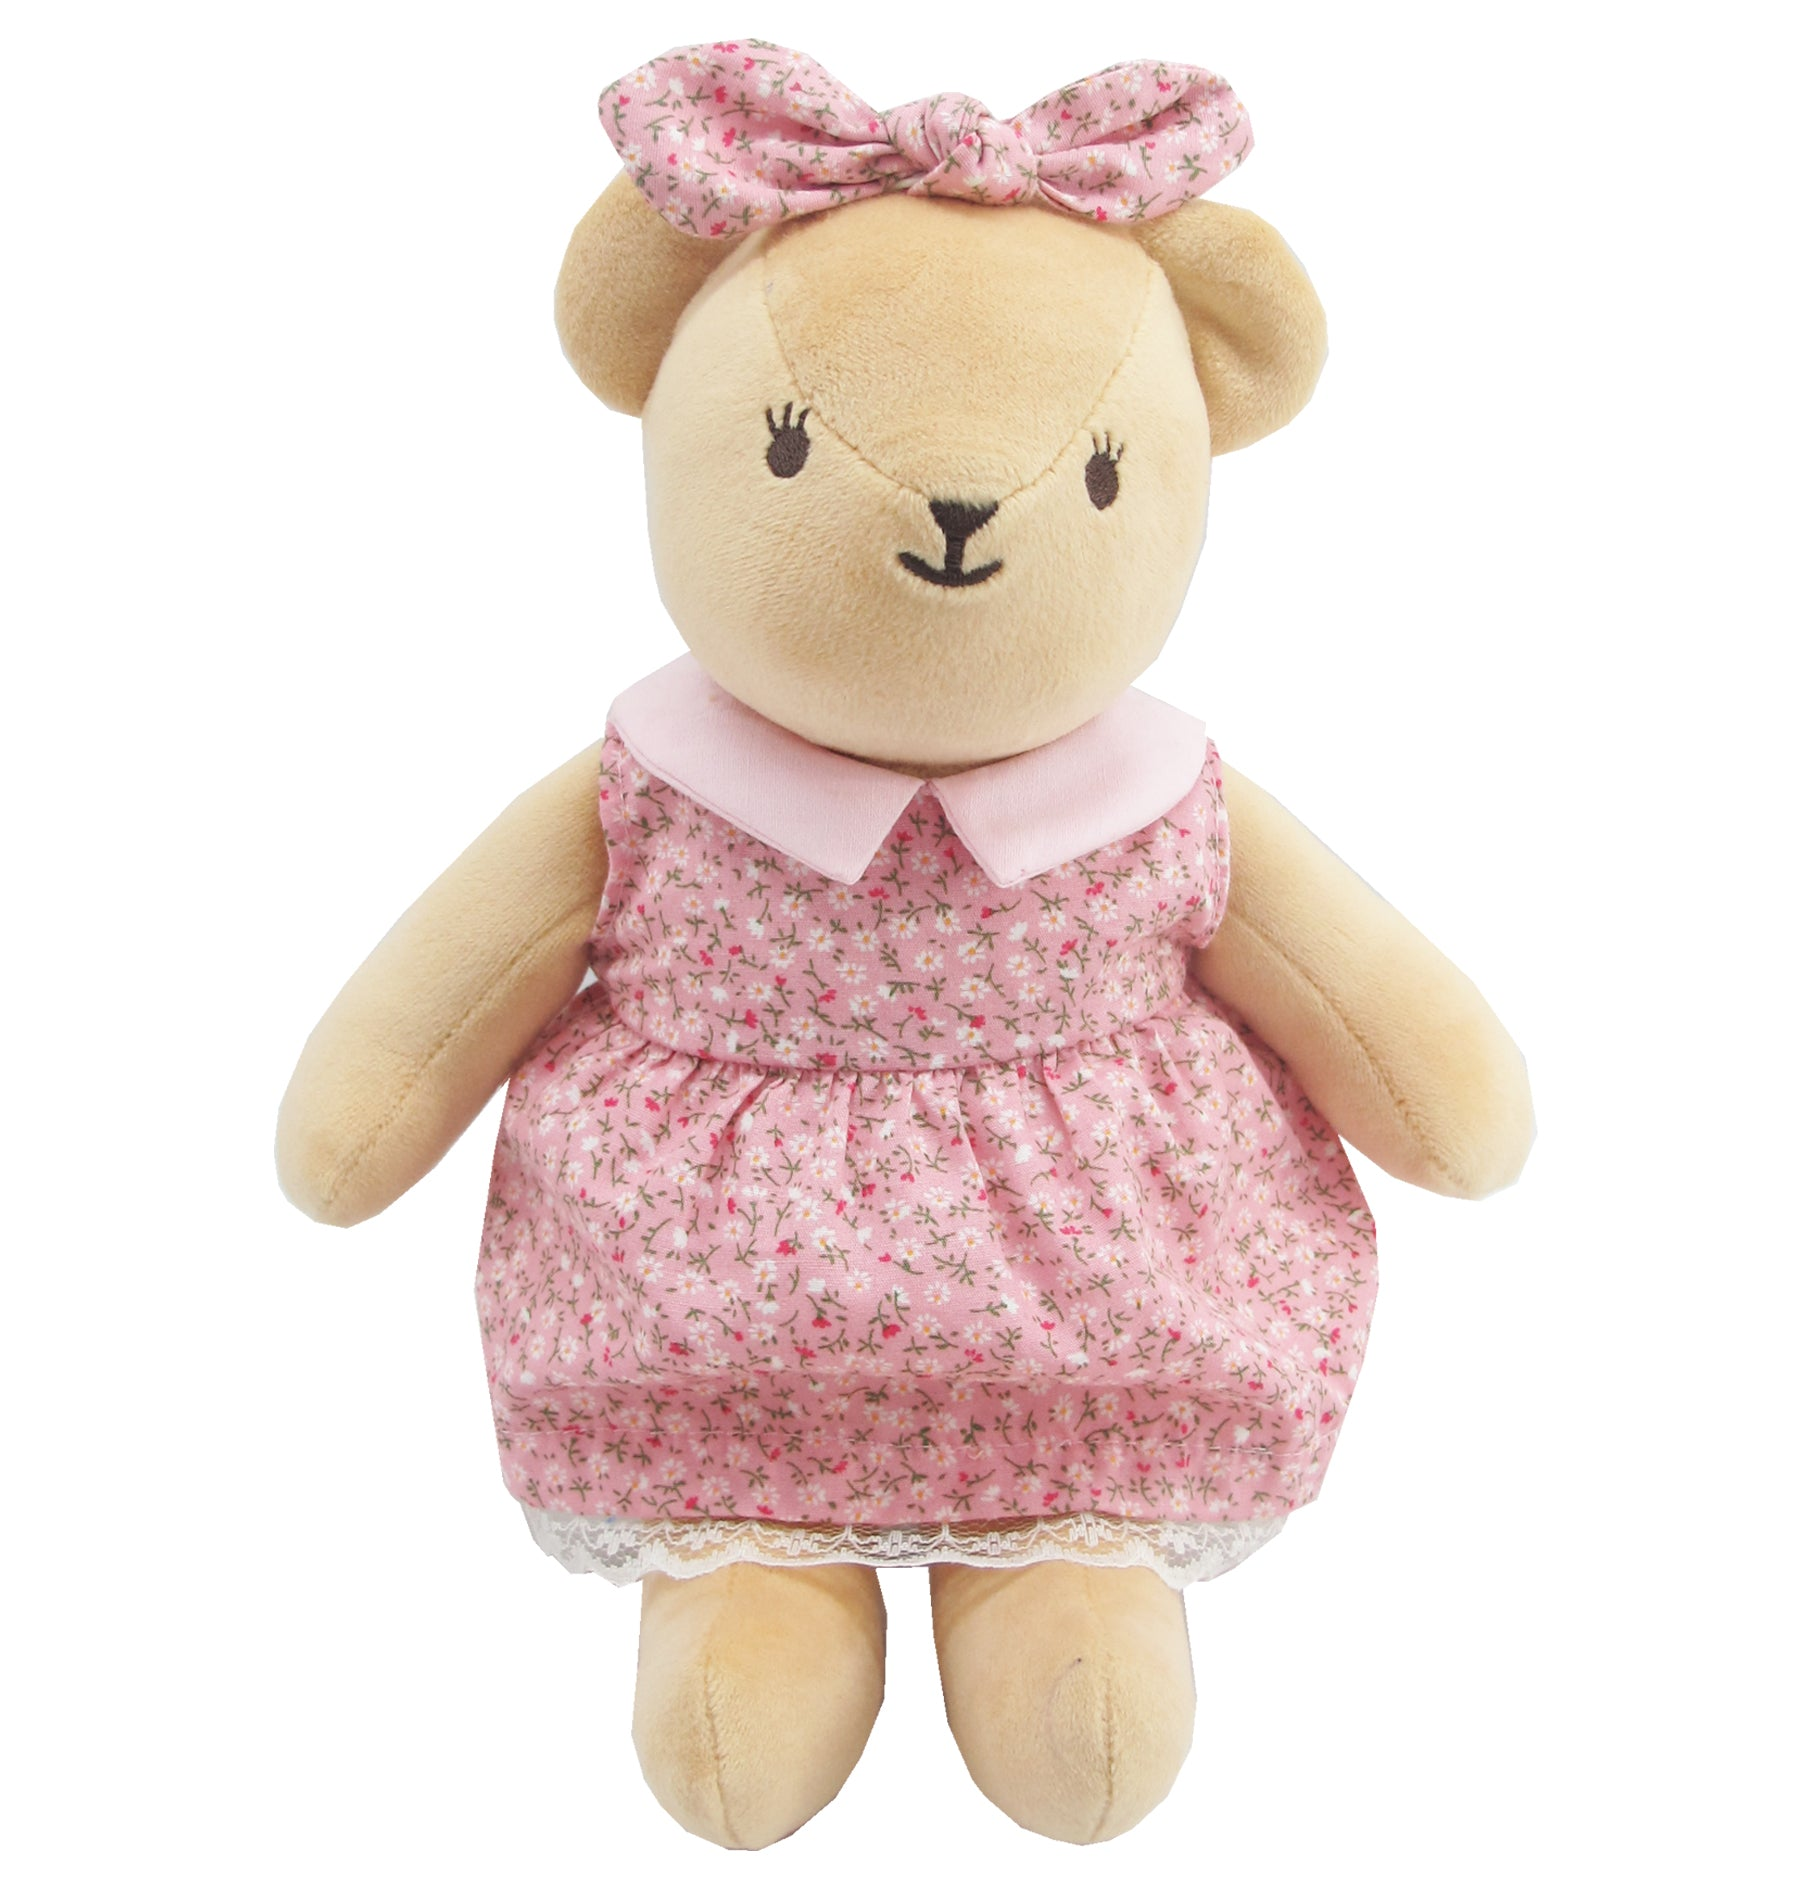 BEAR WITH OUTFITS GIRL 09 INCHI M COLLECTION